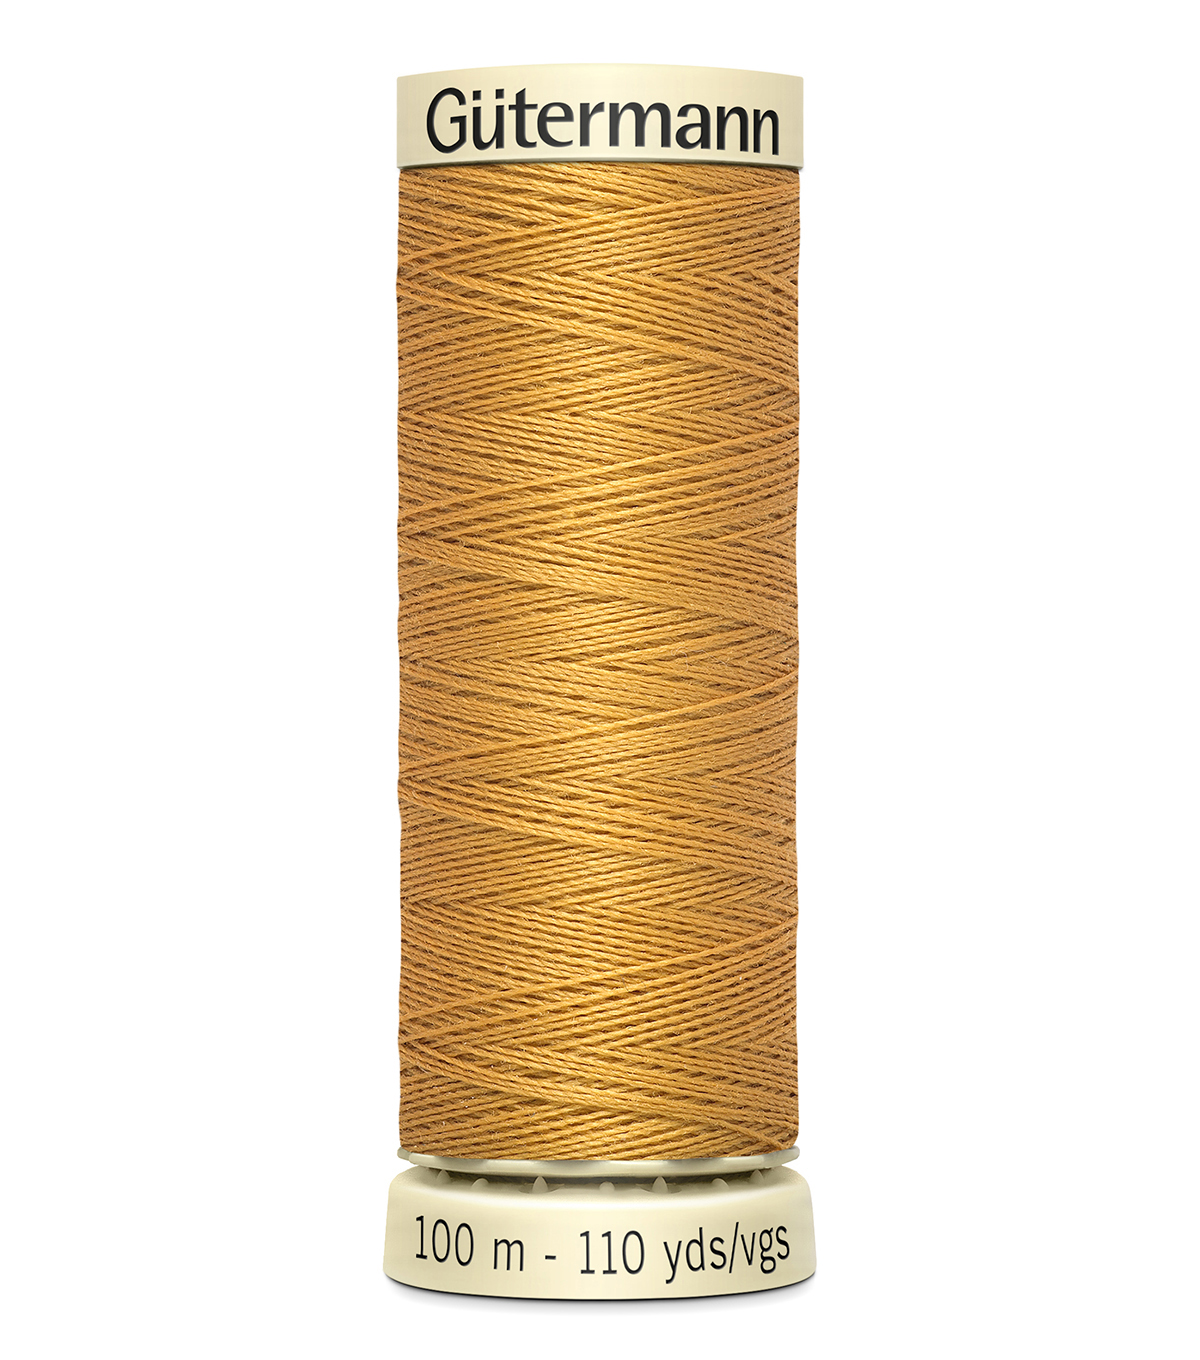 Gutermann Sew All Polyester Thread 110 Yards-Oranges & Yellows , Gold #865